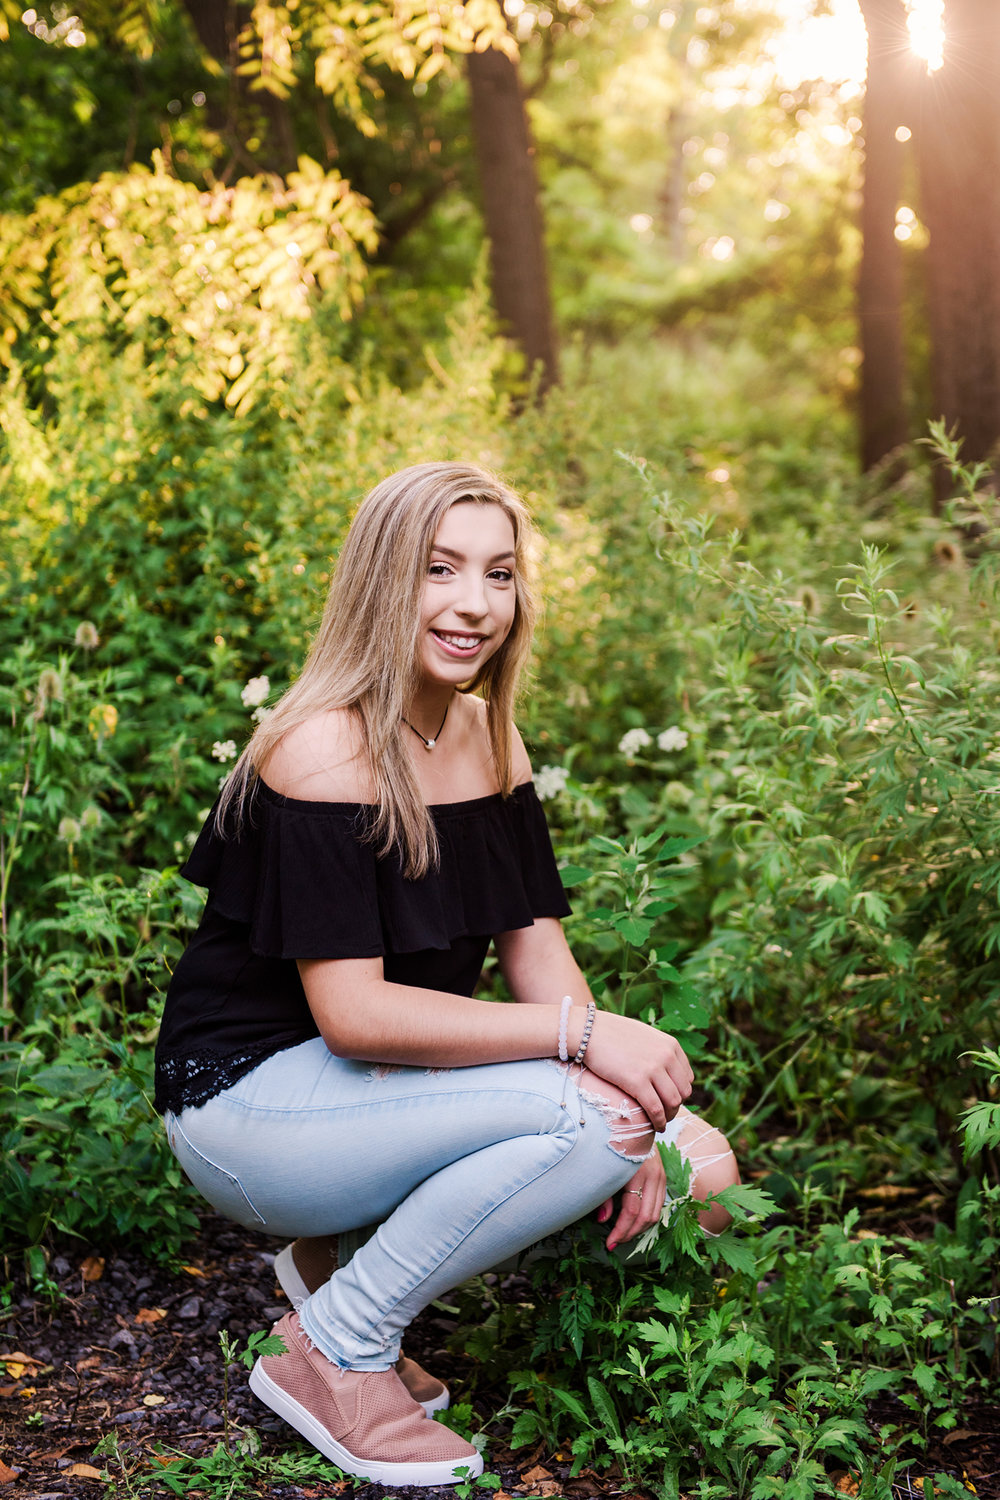 Corbetts_Glen_Rochester_Senior_Portrait_Session_JILL_STUDIO_Rochester_NY_Photographer_DSC_4397.jpg